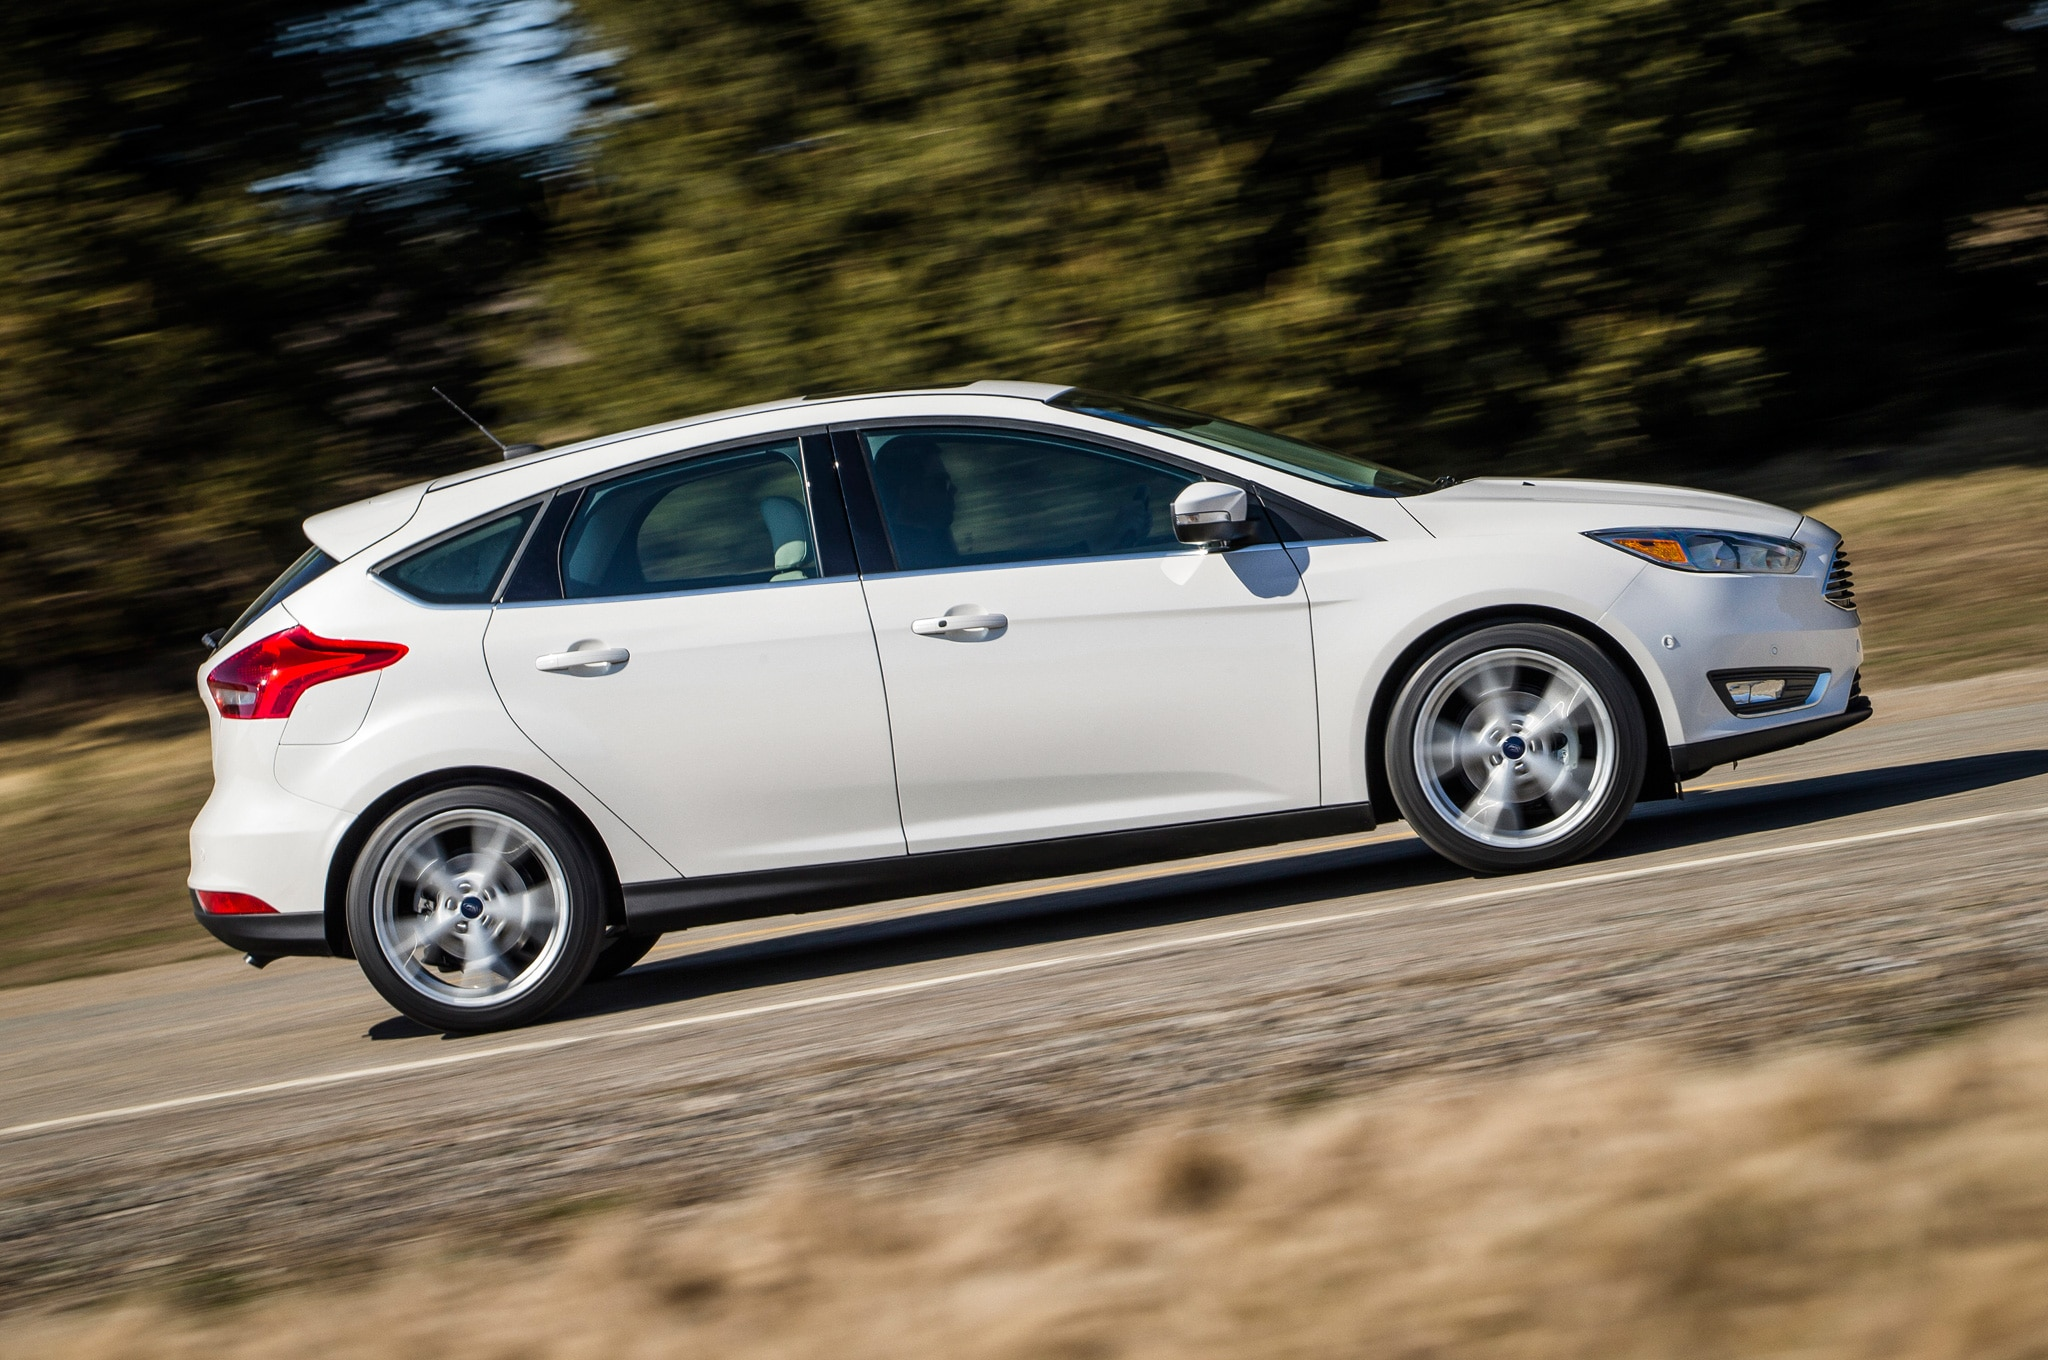 2015 ford focus hatchback side motion view tilted